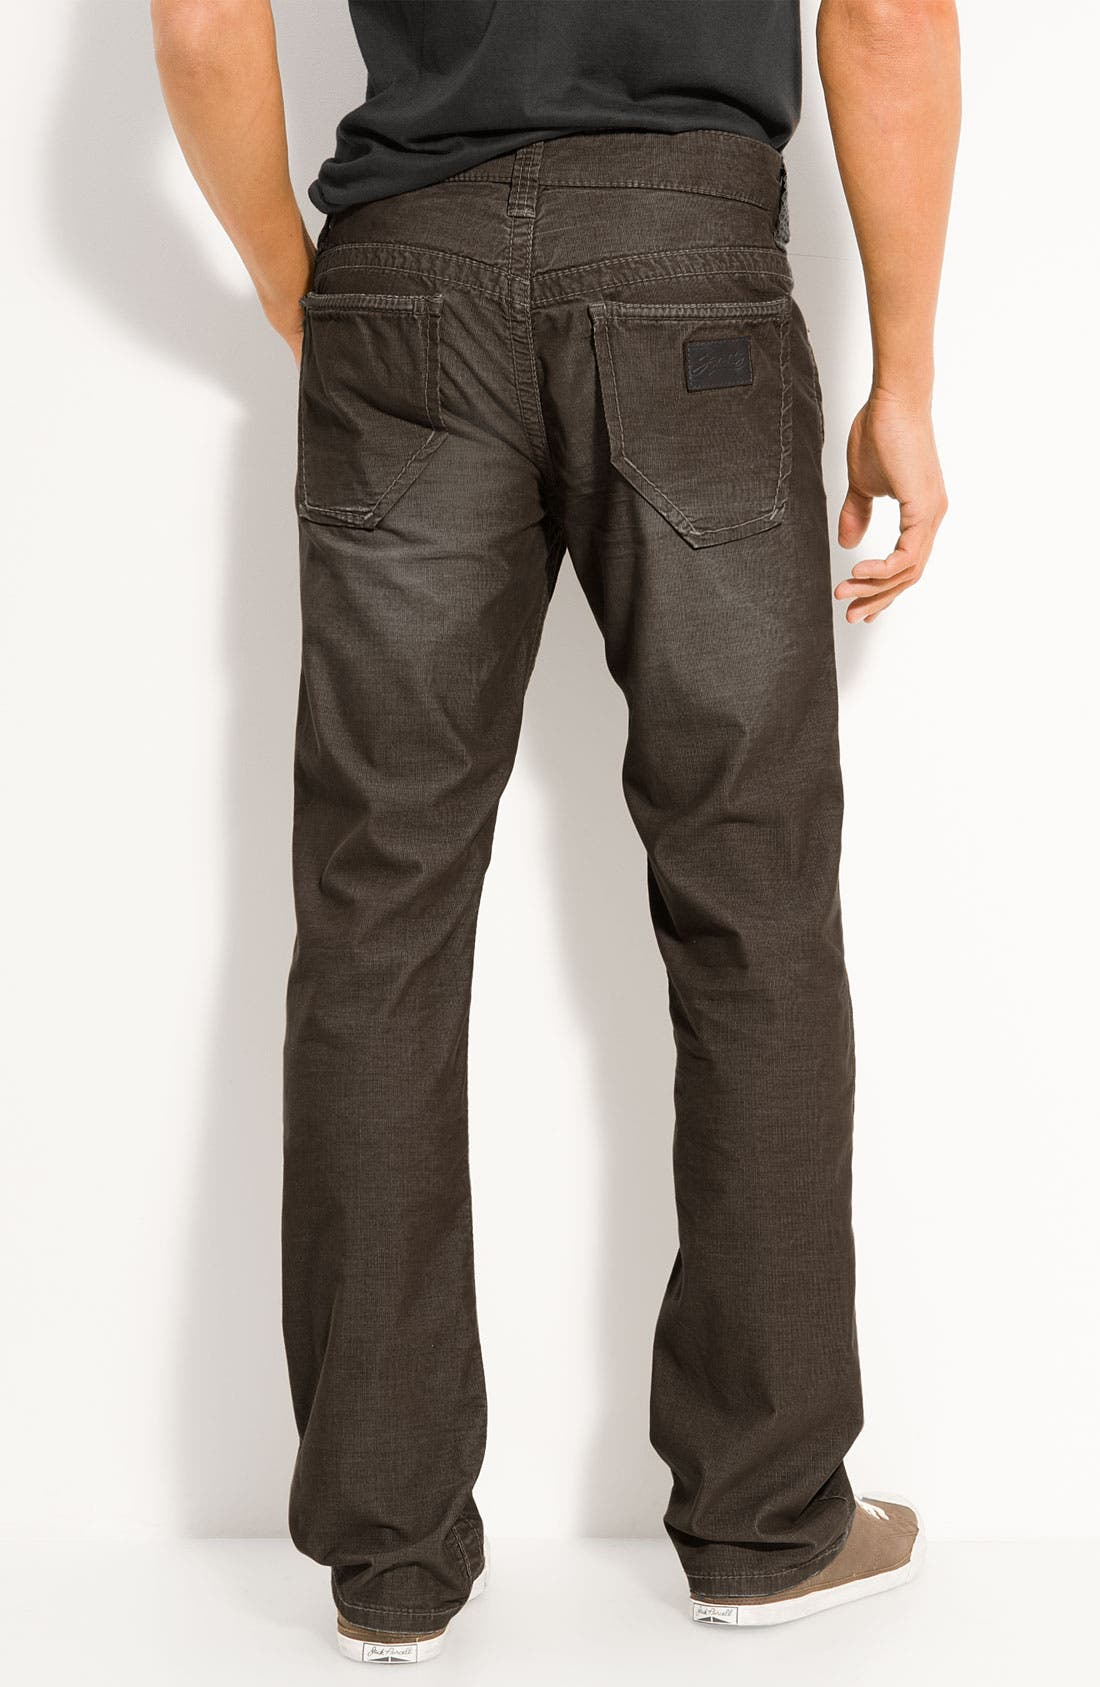 Main Image - Stitch's Jeans 'Texas' Straight Leg Corduroy Pants